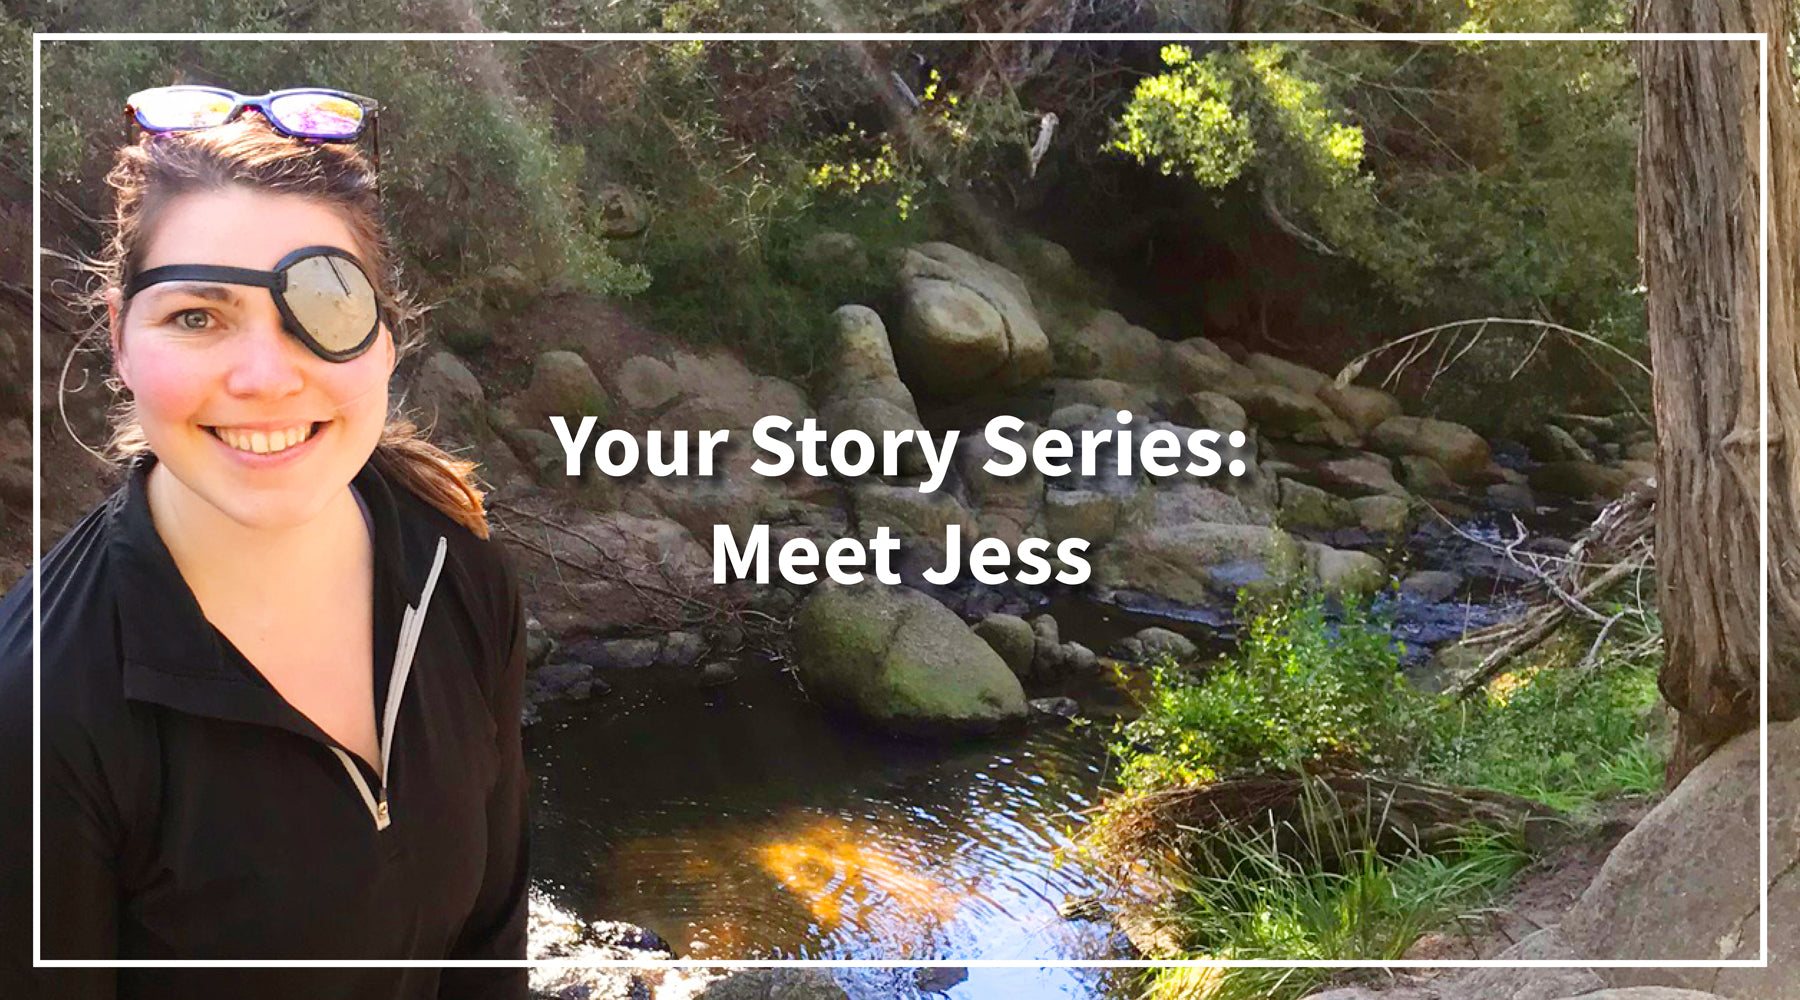 Solbari blog: Your Story Series: Meet Jess